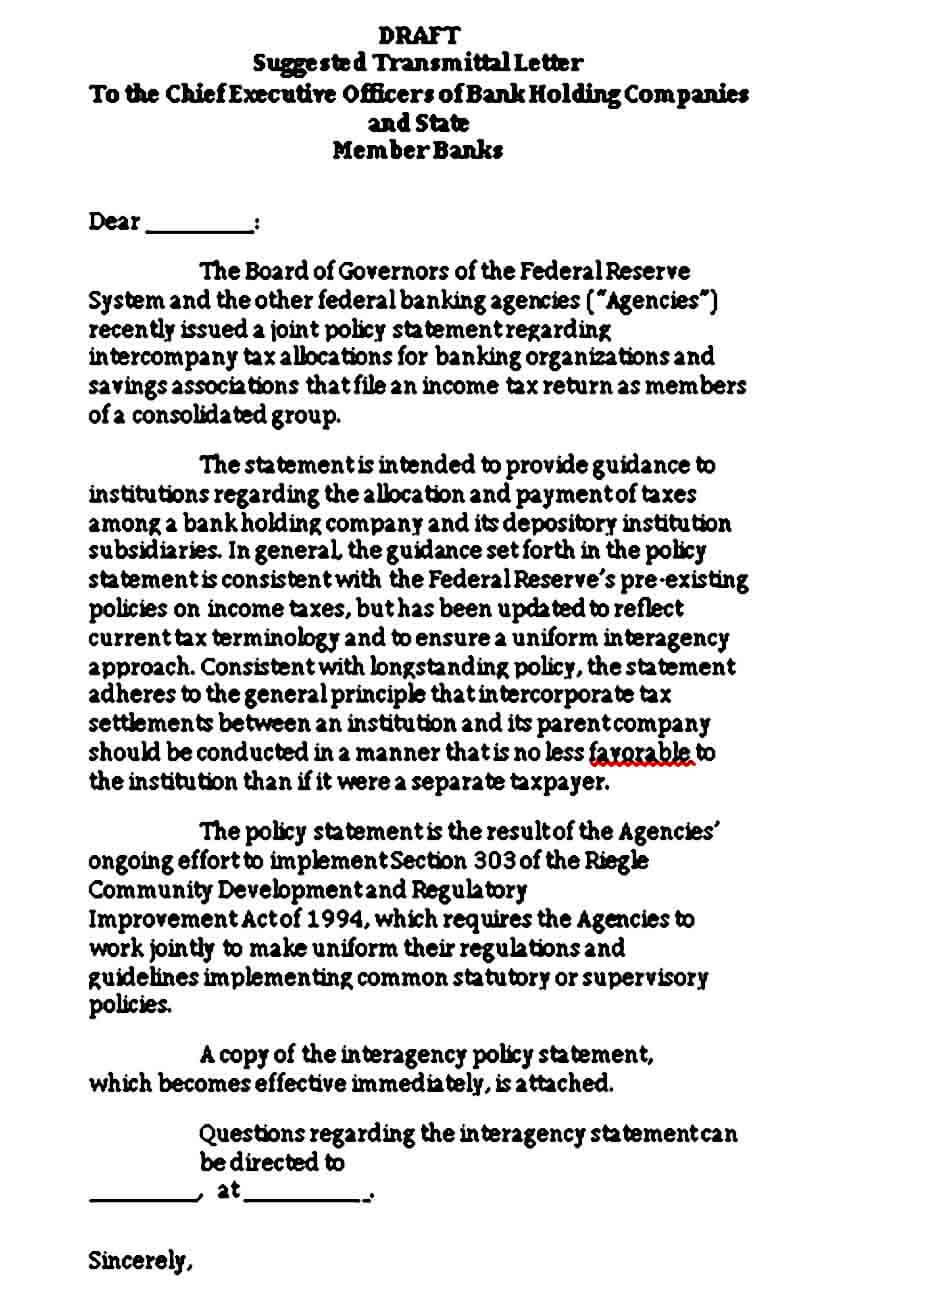 Draft Suggested Transmittal Letter